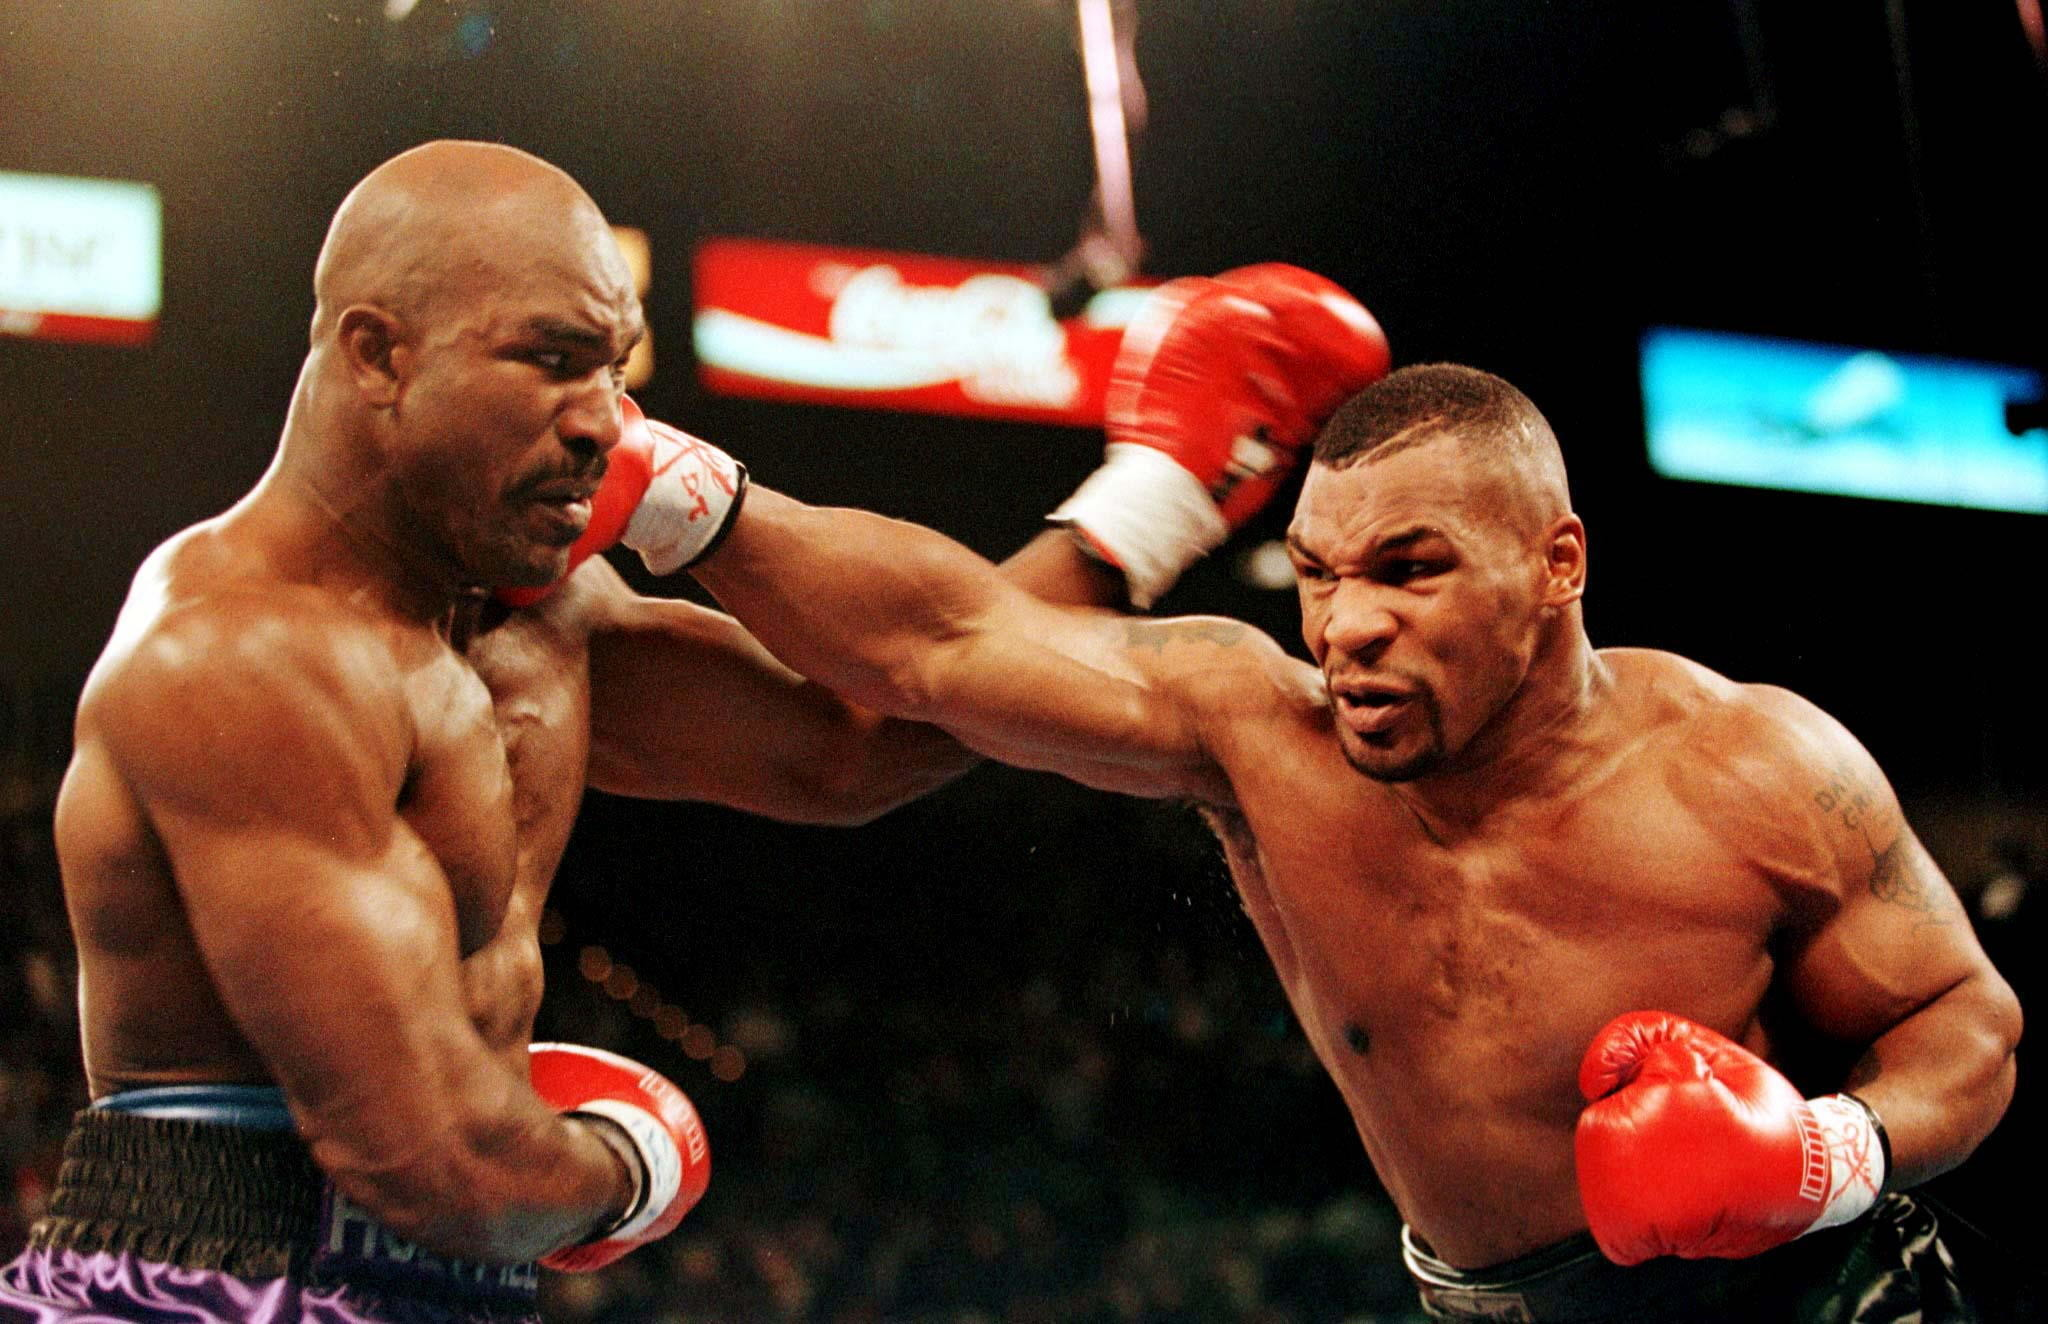 Mike tyson photos download Mike Tyson Pictures and Photos Getty Images